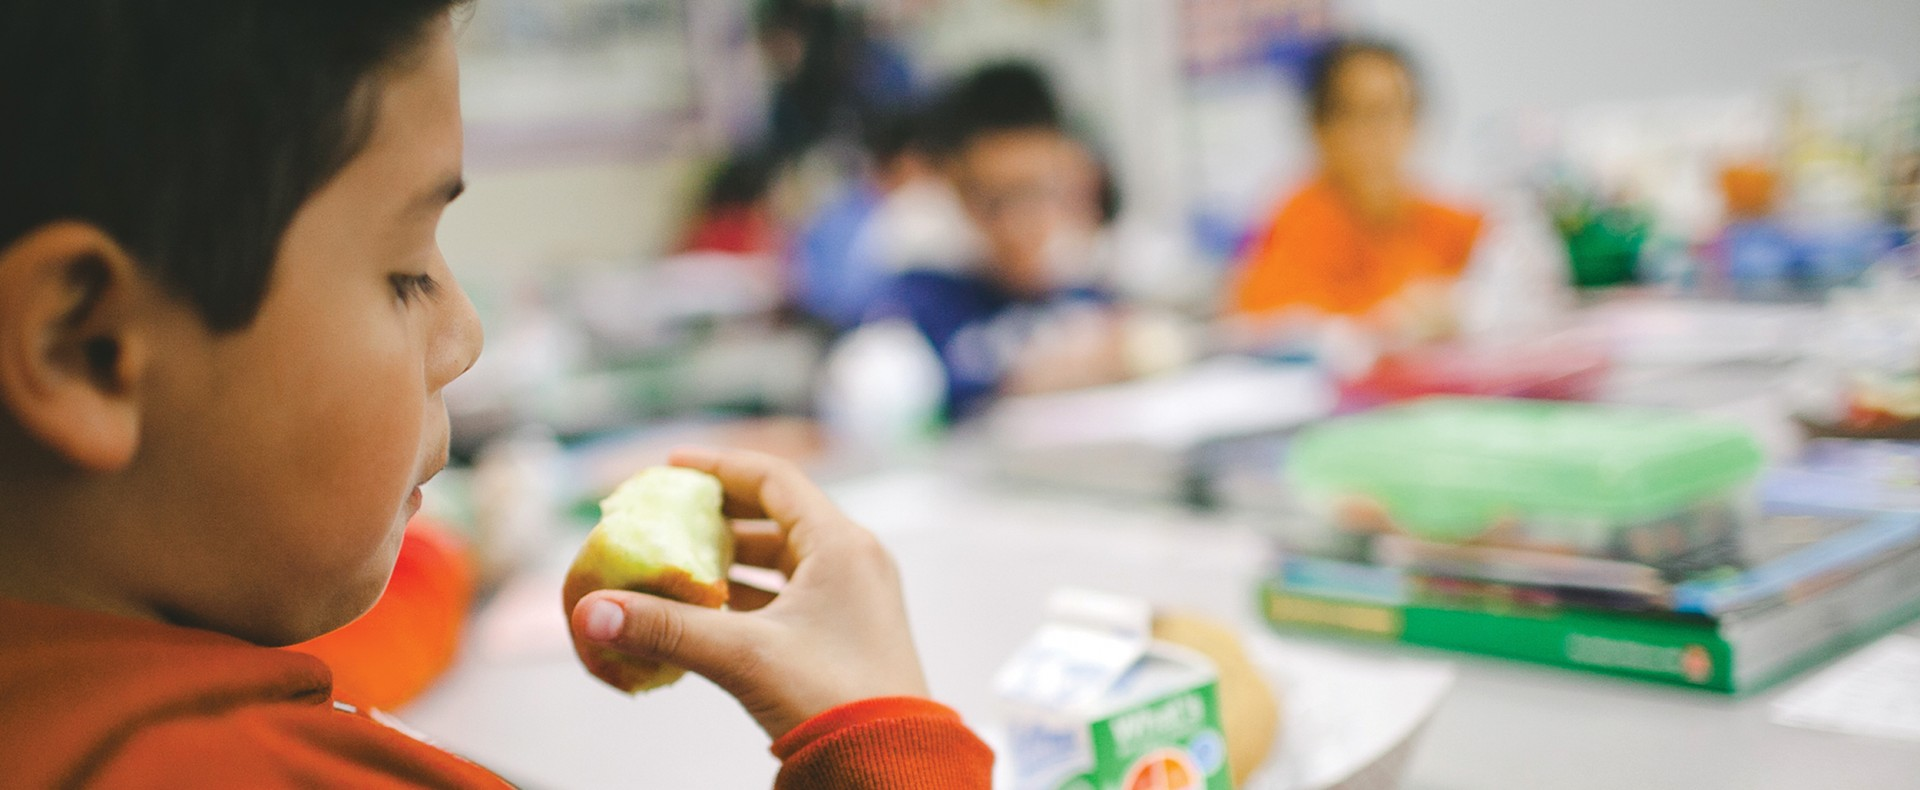 Are Kids in America Really Going Hungry?